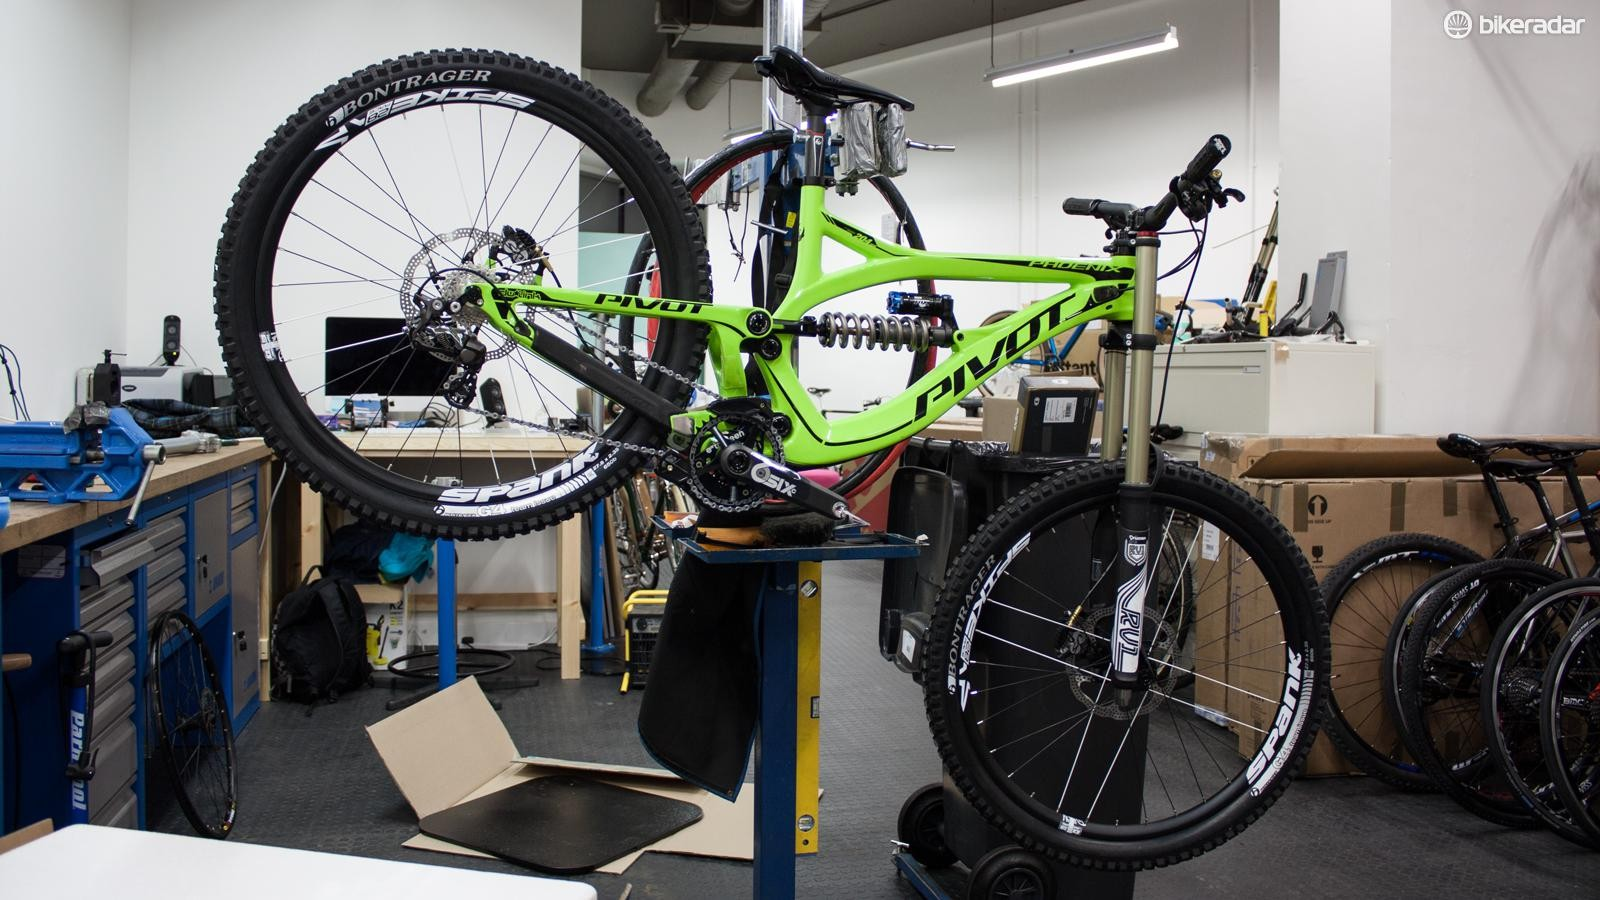 The Pivot's luminous green paint job makes it stand out as you flash down trails